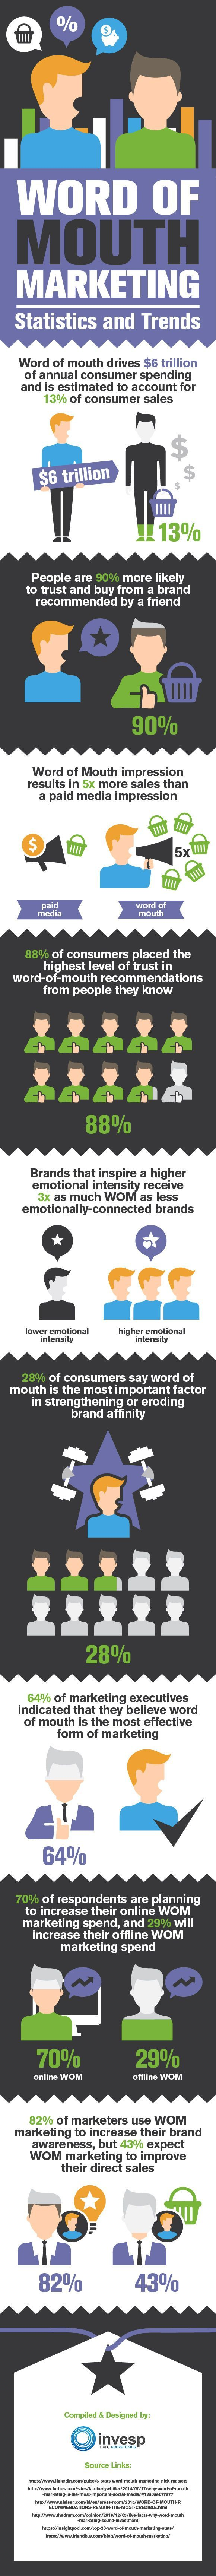 Word of Mouth Marketing: 10 Stats Showing Why You Should Use It More [Infographic]